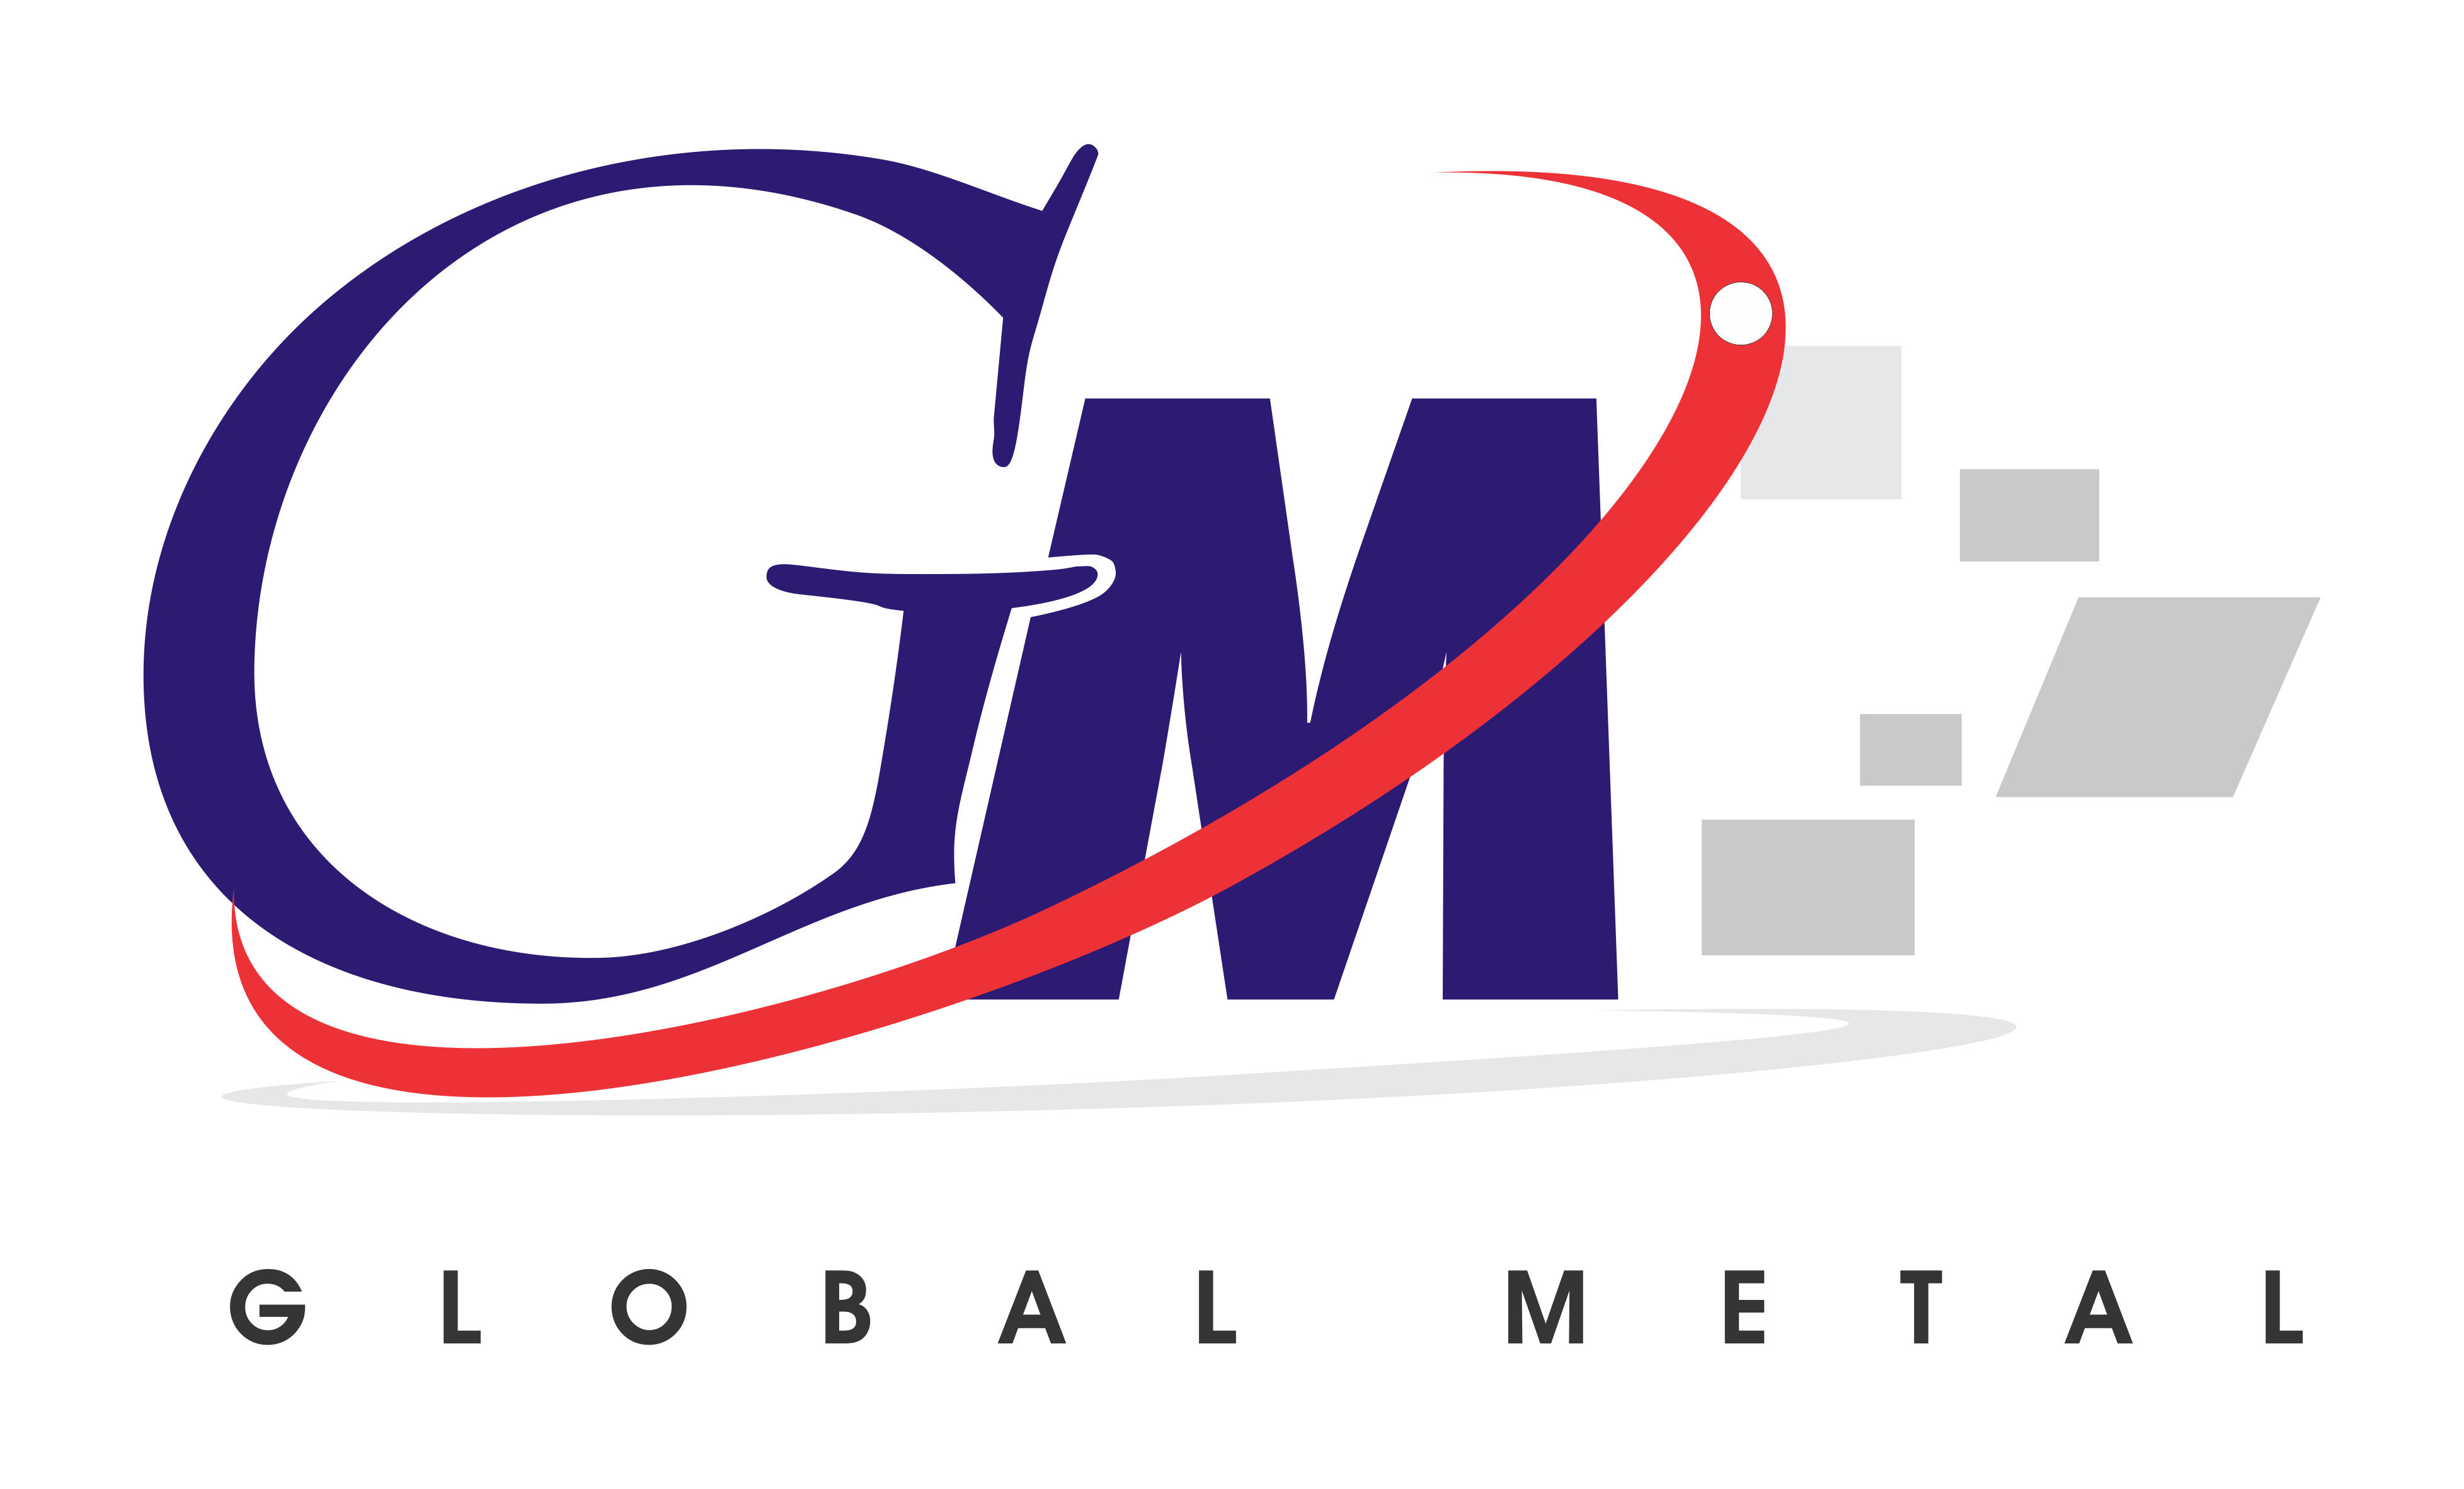 Global Metal International